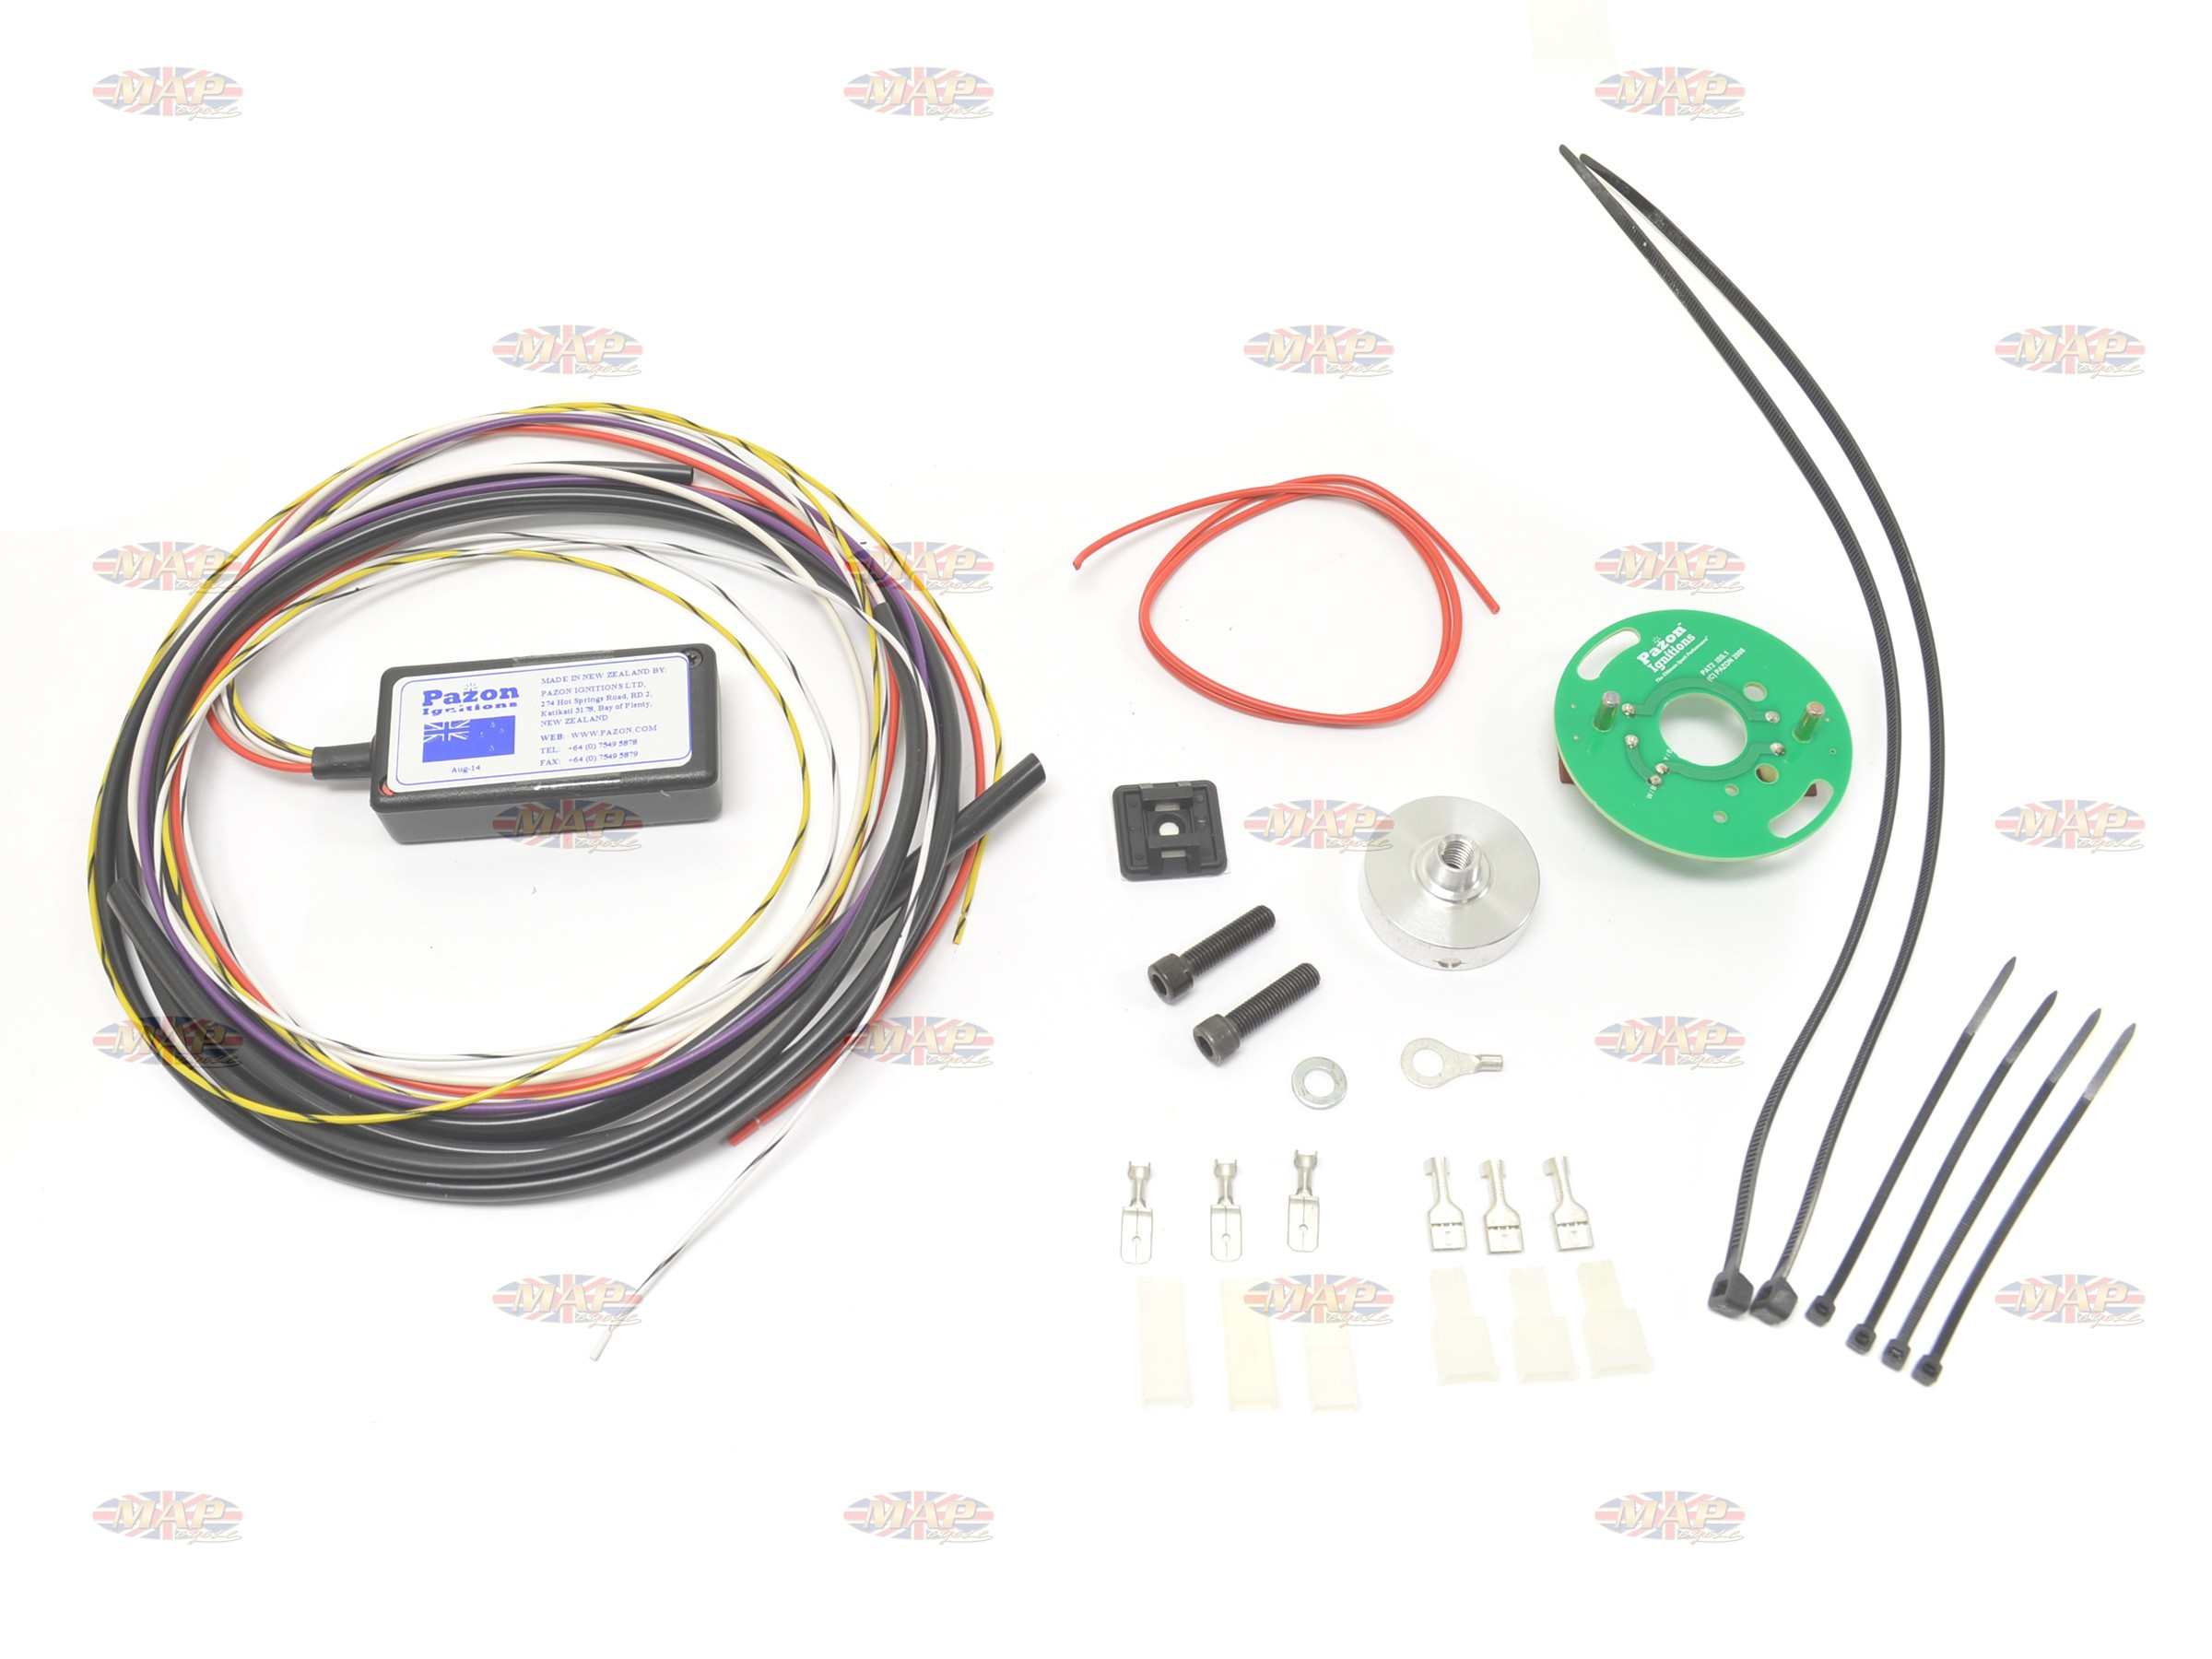 Pazon Sure Fire 6 Volt Electronic Ignition For Triumph Bsa Singles Distributor Wiring Diagram Map4401